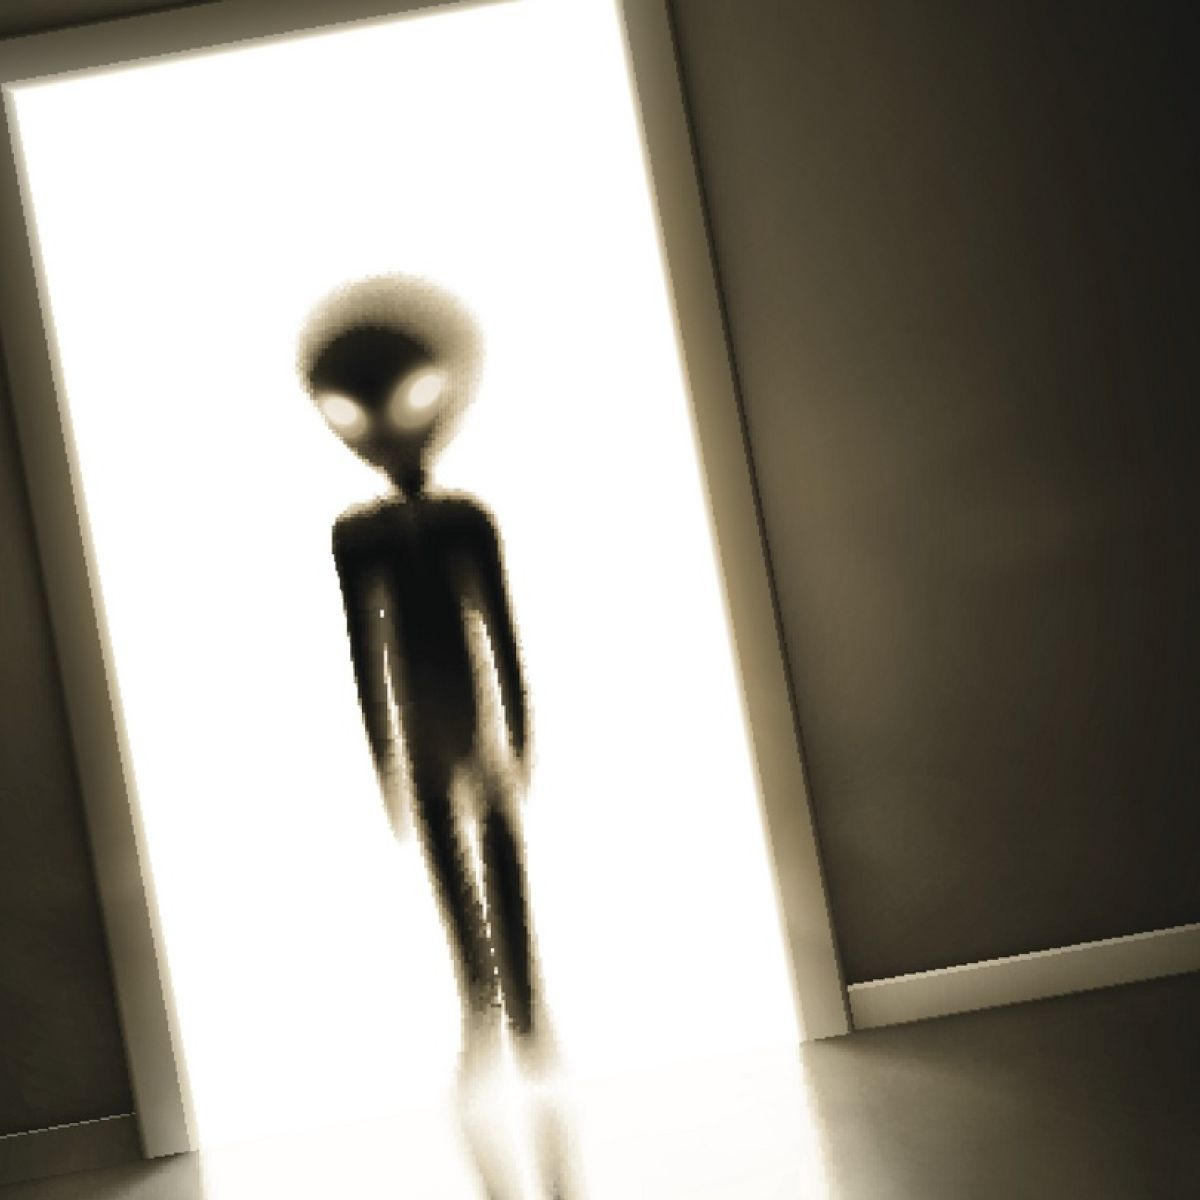 A likely explanation for alien abductions